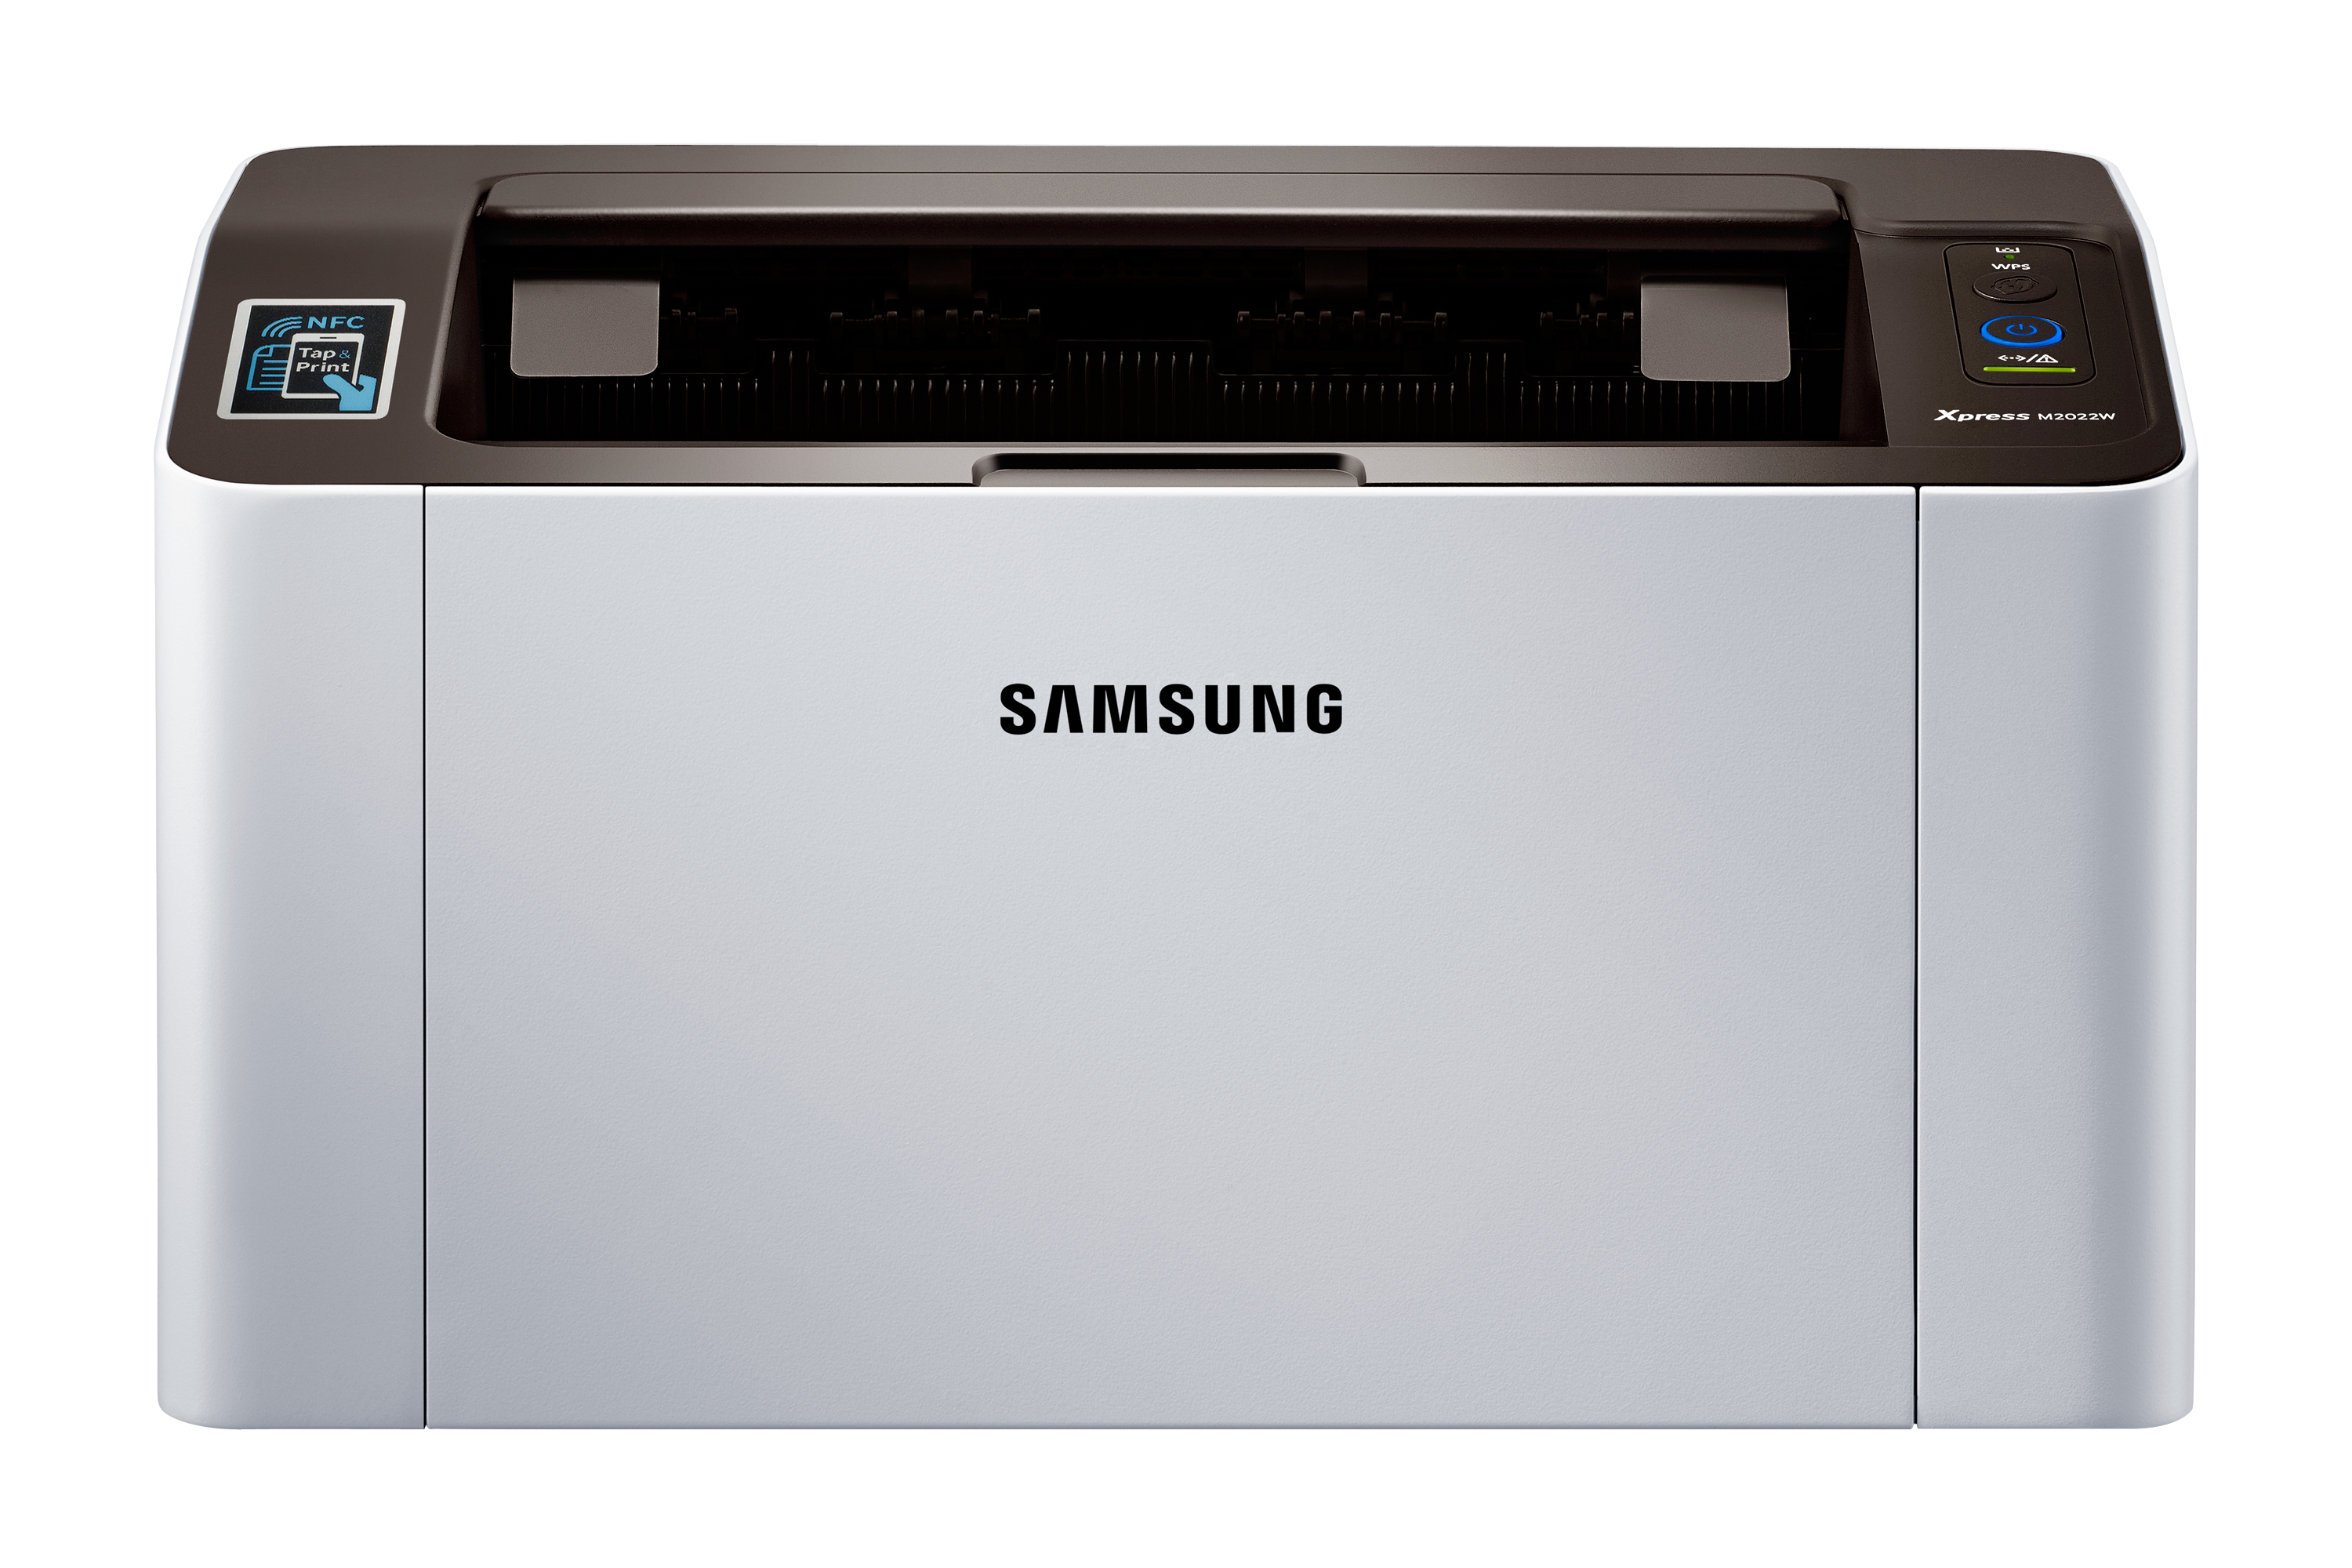 SL-M2022W Samsung Xpress SL-M2022W Wireless printer - Refurbished with 3 months RTB Warranty.